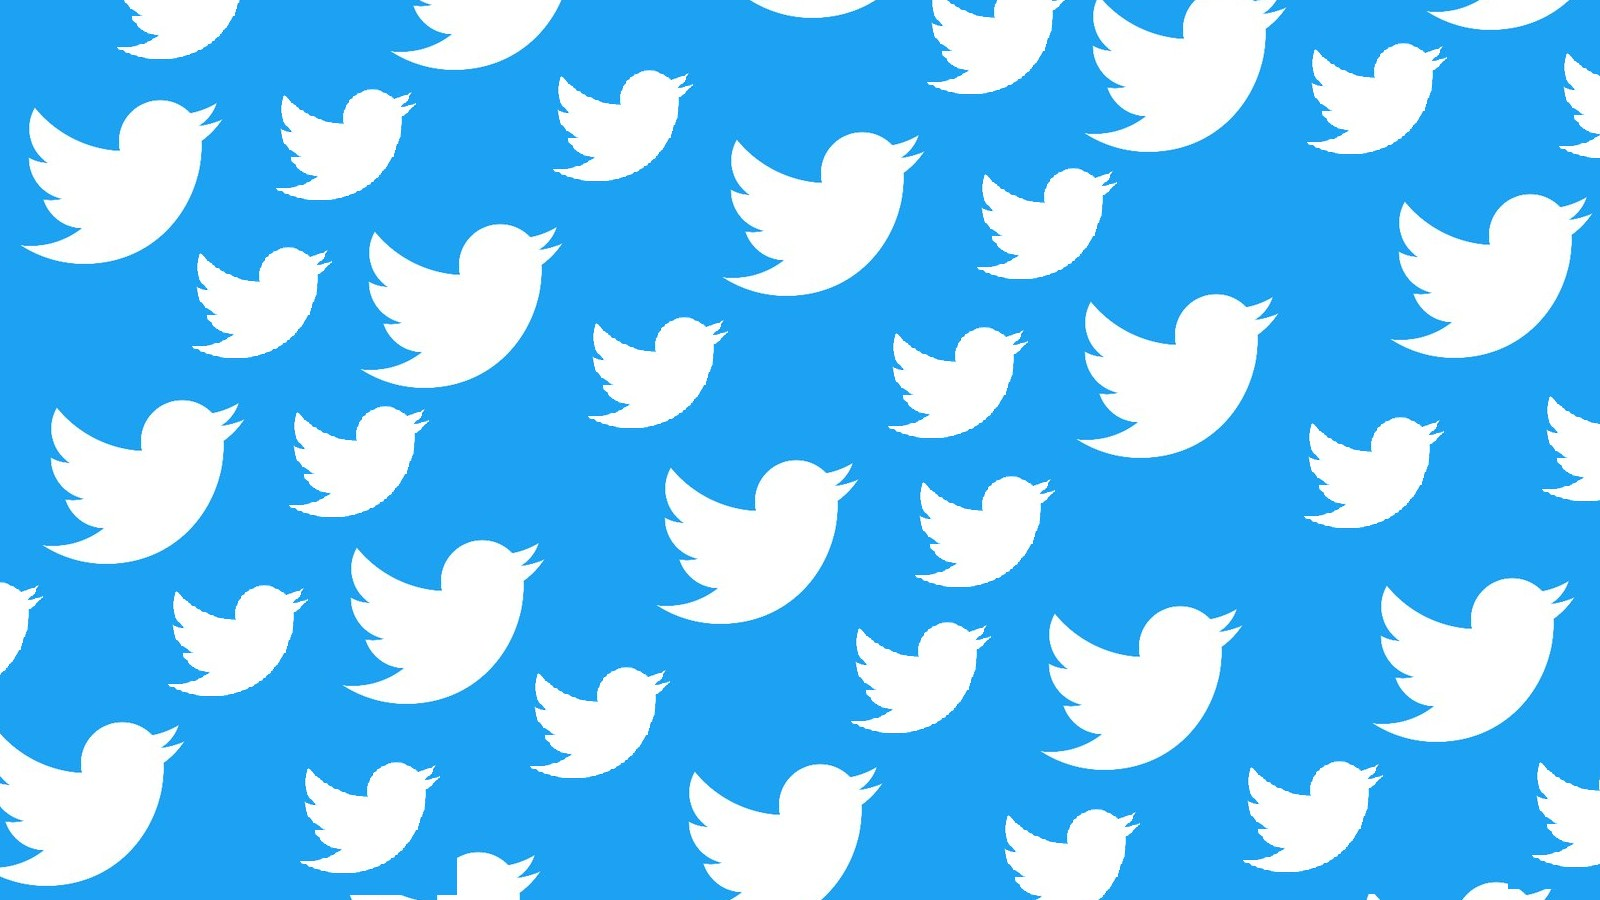 3 Twitter apps for Android that use less data 1600x900